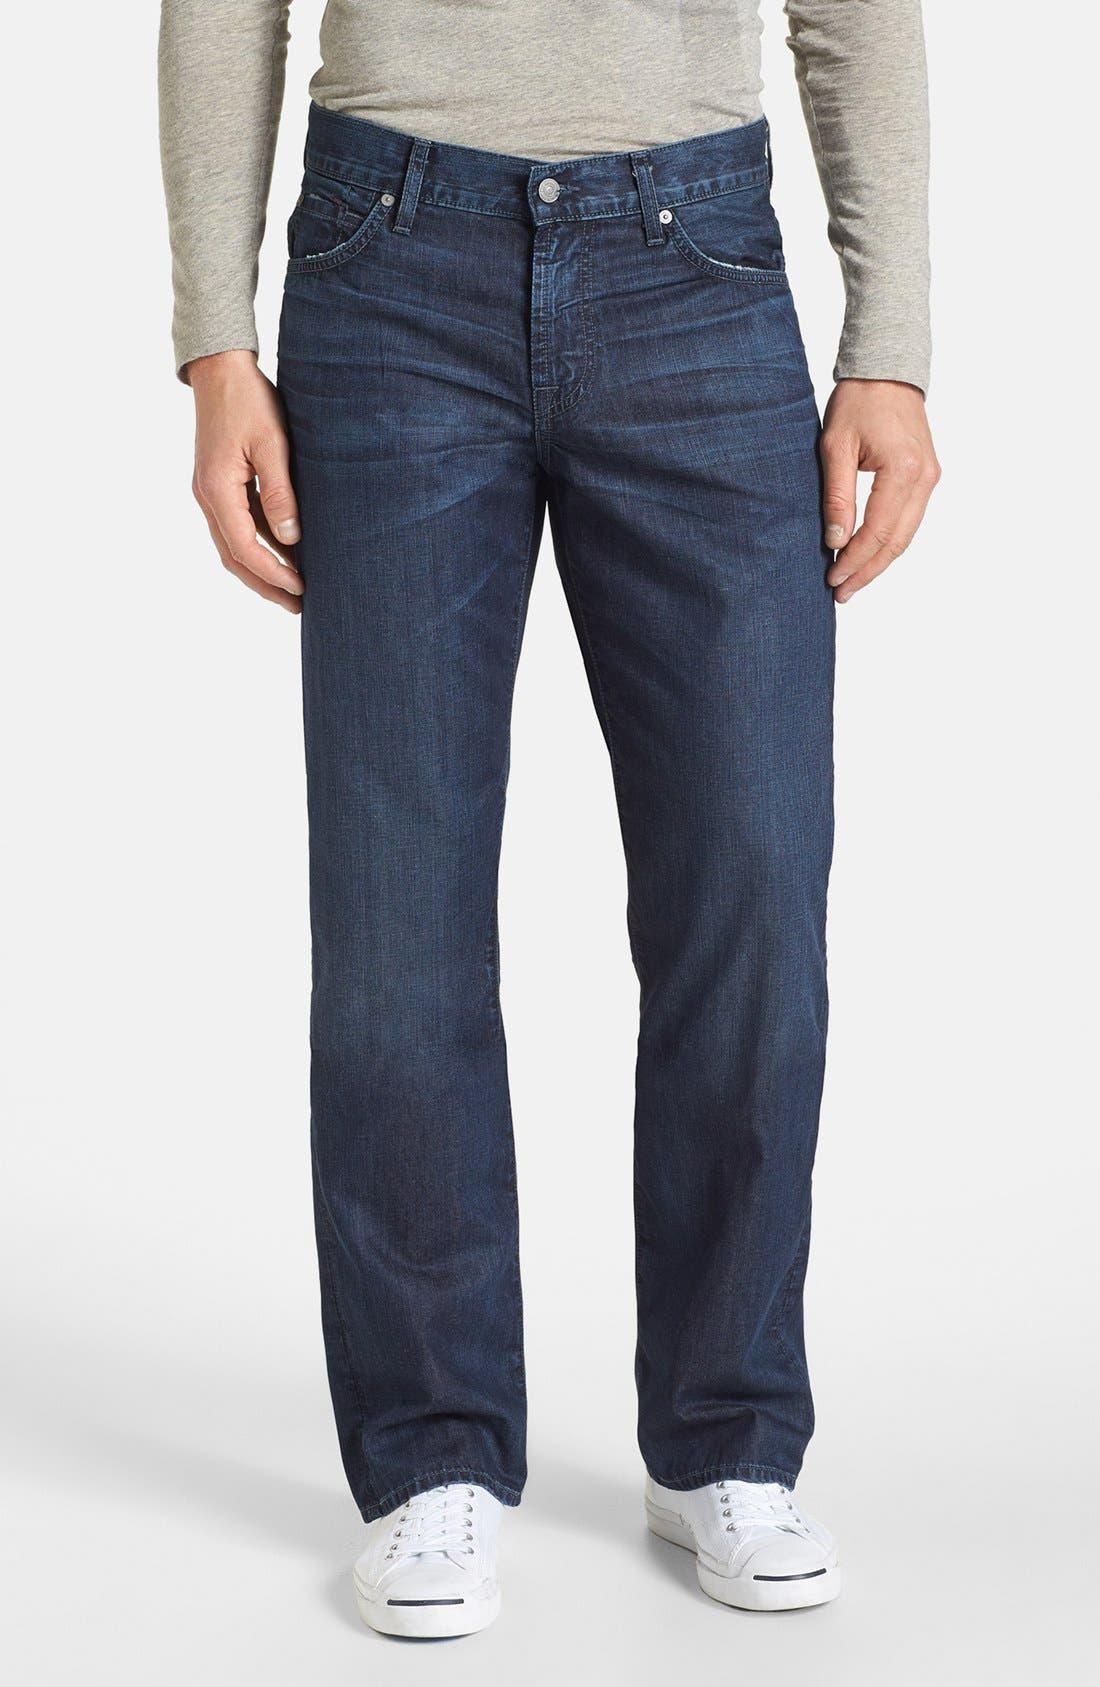 Alternate Image 1 Selected - 7 For All Mankind® 'Austyn' Relaxed Fit Jeans (Highland Park Lane)